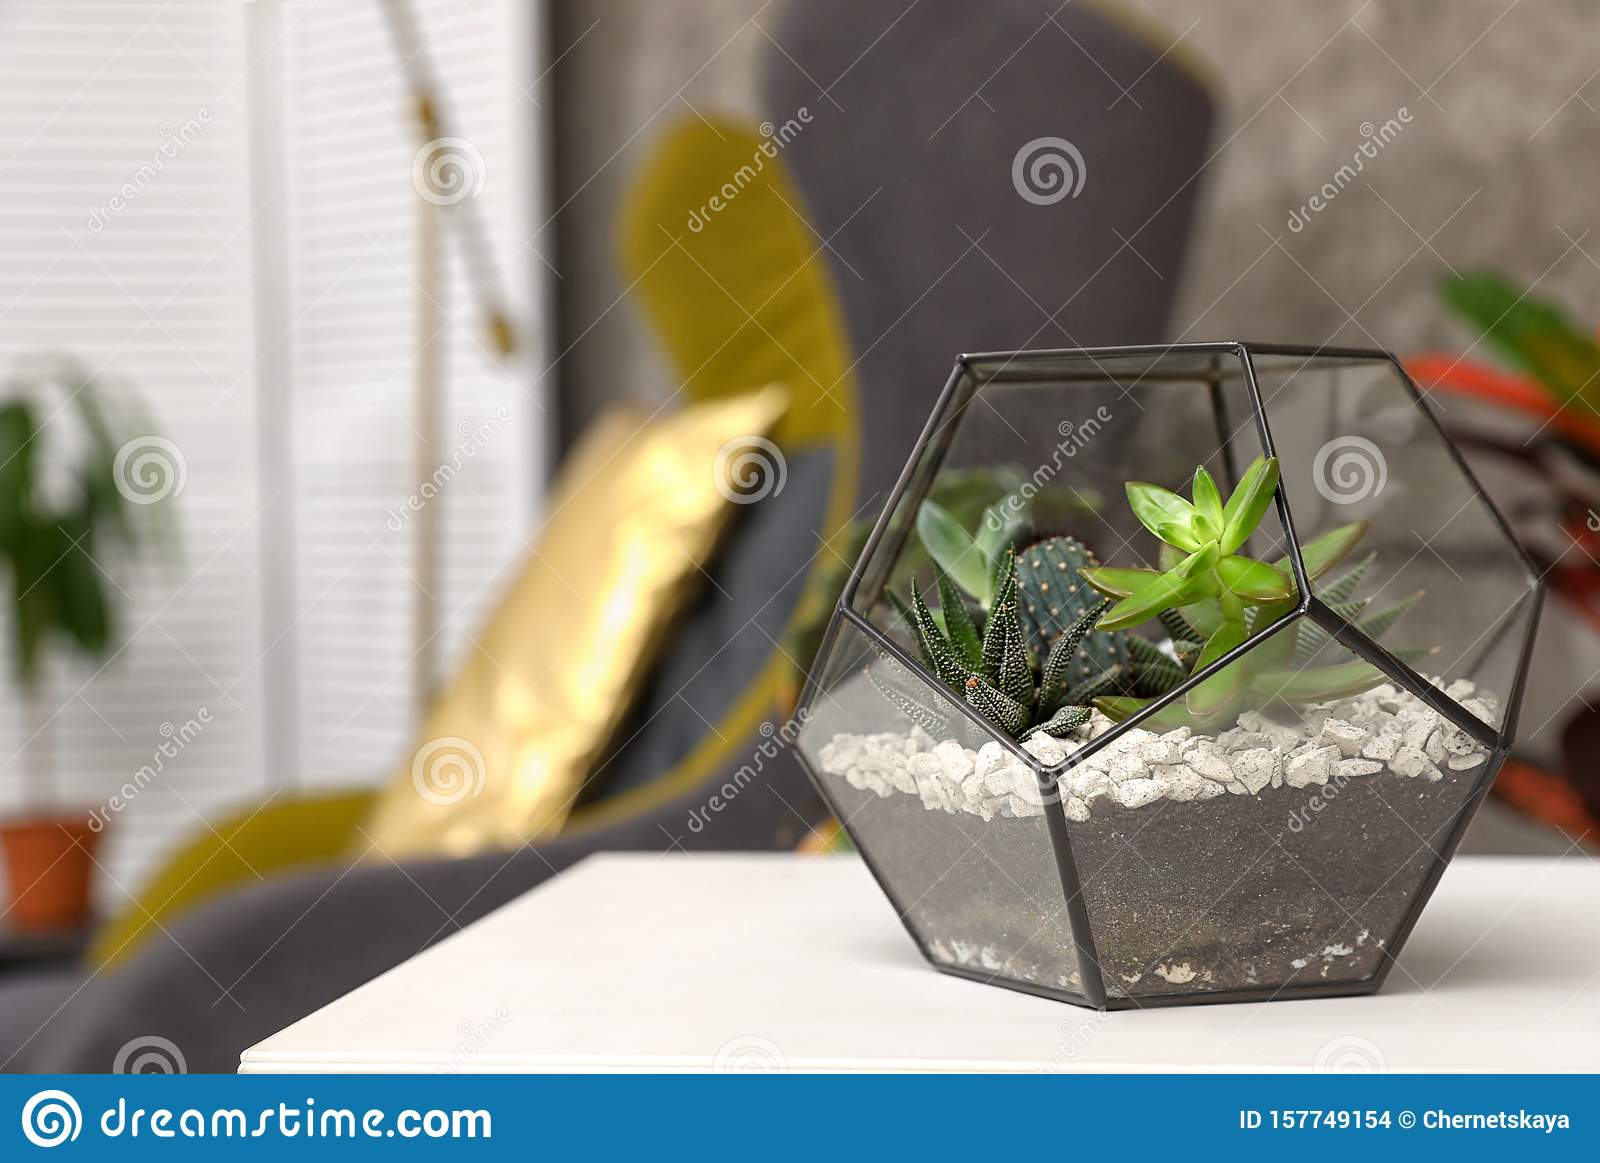 Terrarium With Succulents On Table In Room Trendy Plants Stock Photo Image Of Decor Floral 157749154